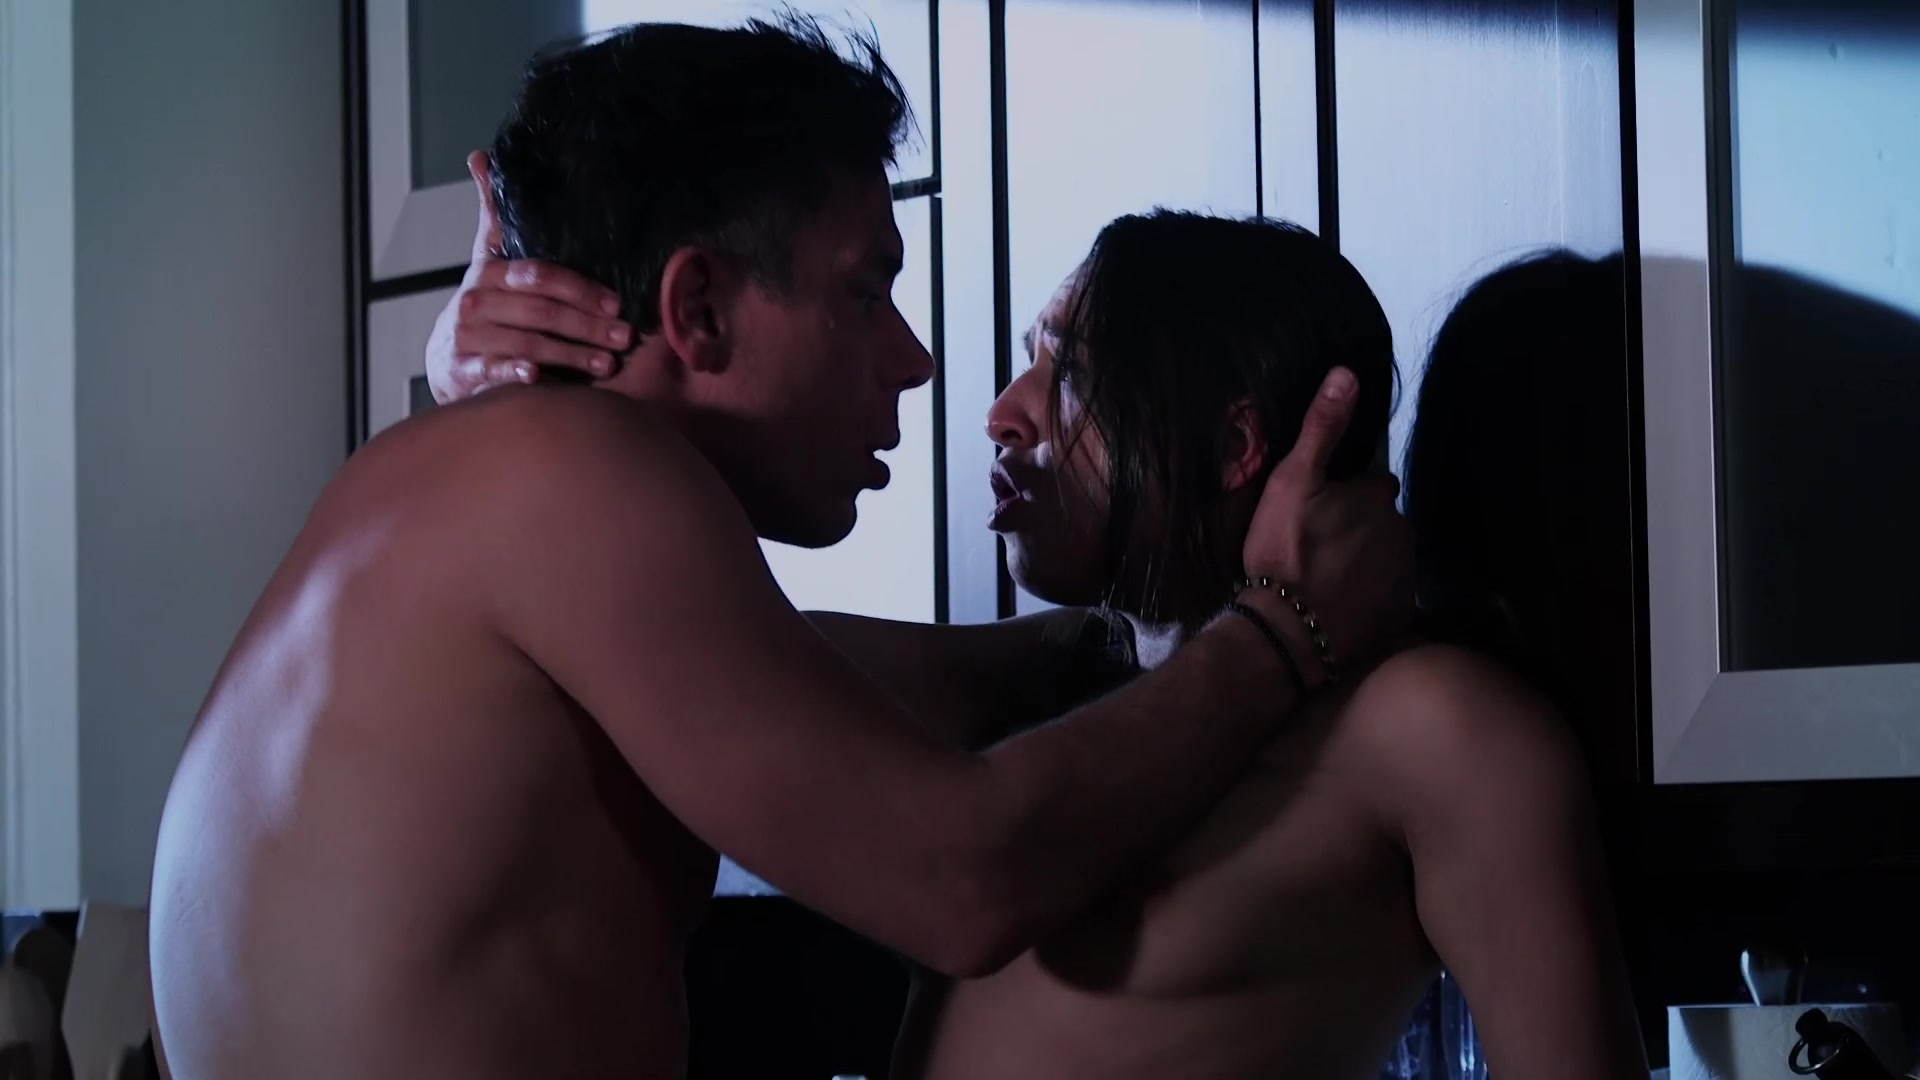 Scene with Mick Blue and Sara Luvv - image 9 out of 20